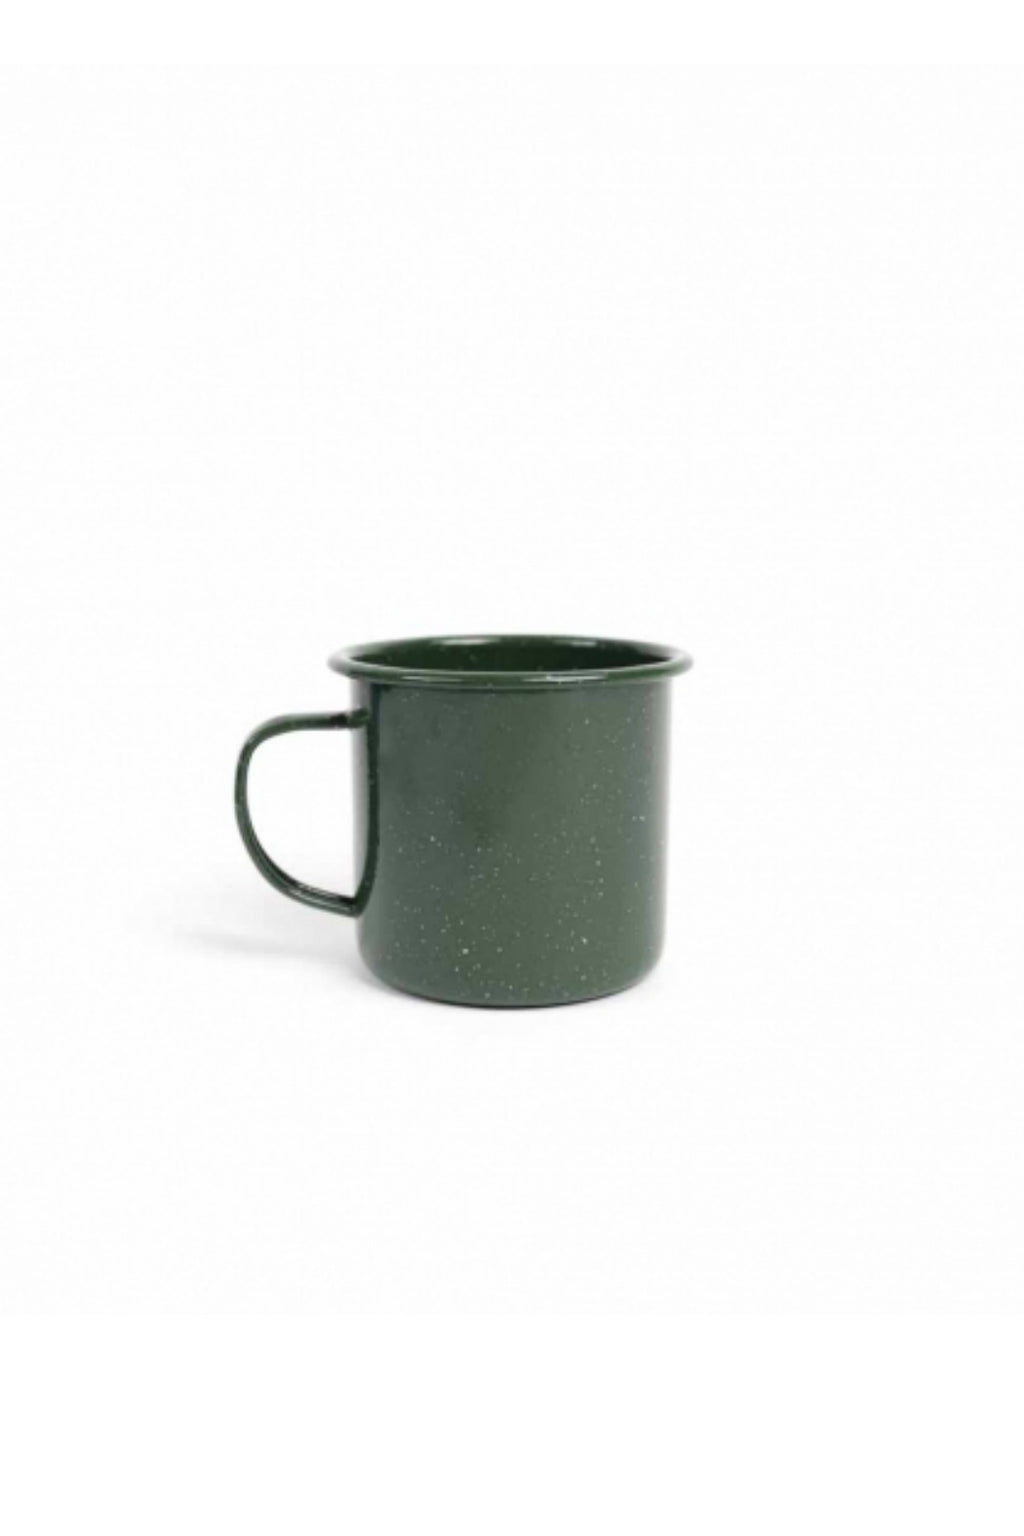 Crow Canyon Home Stinson 12oz Mug - Green